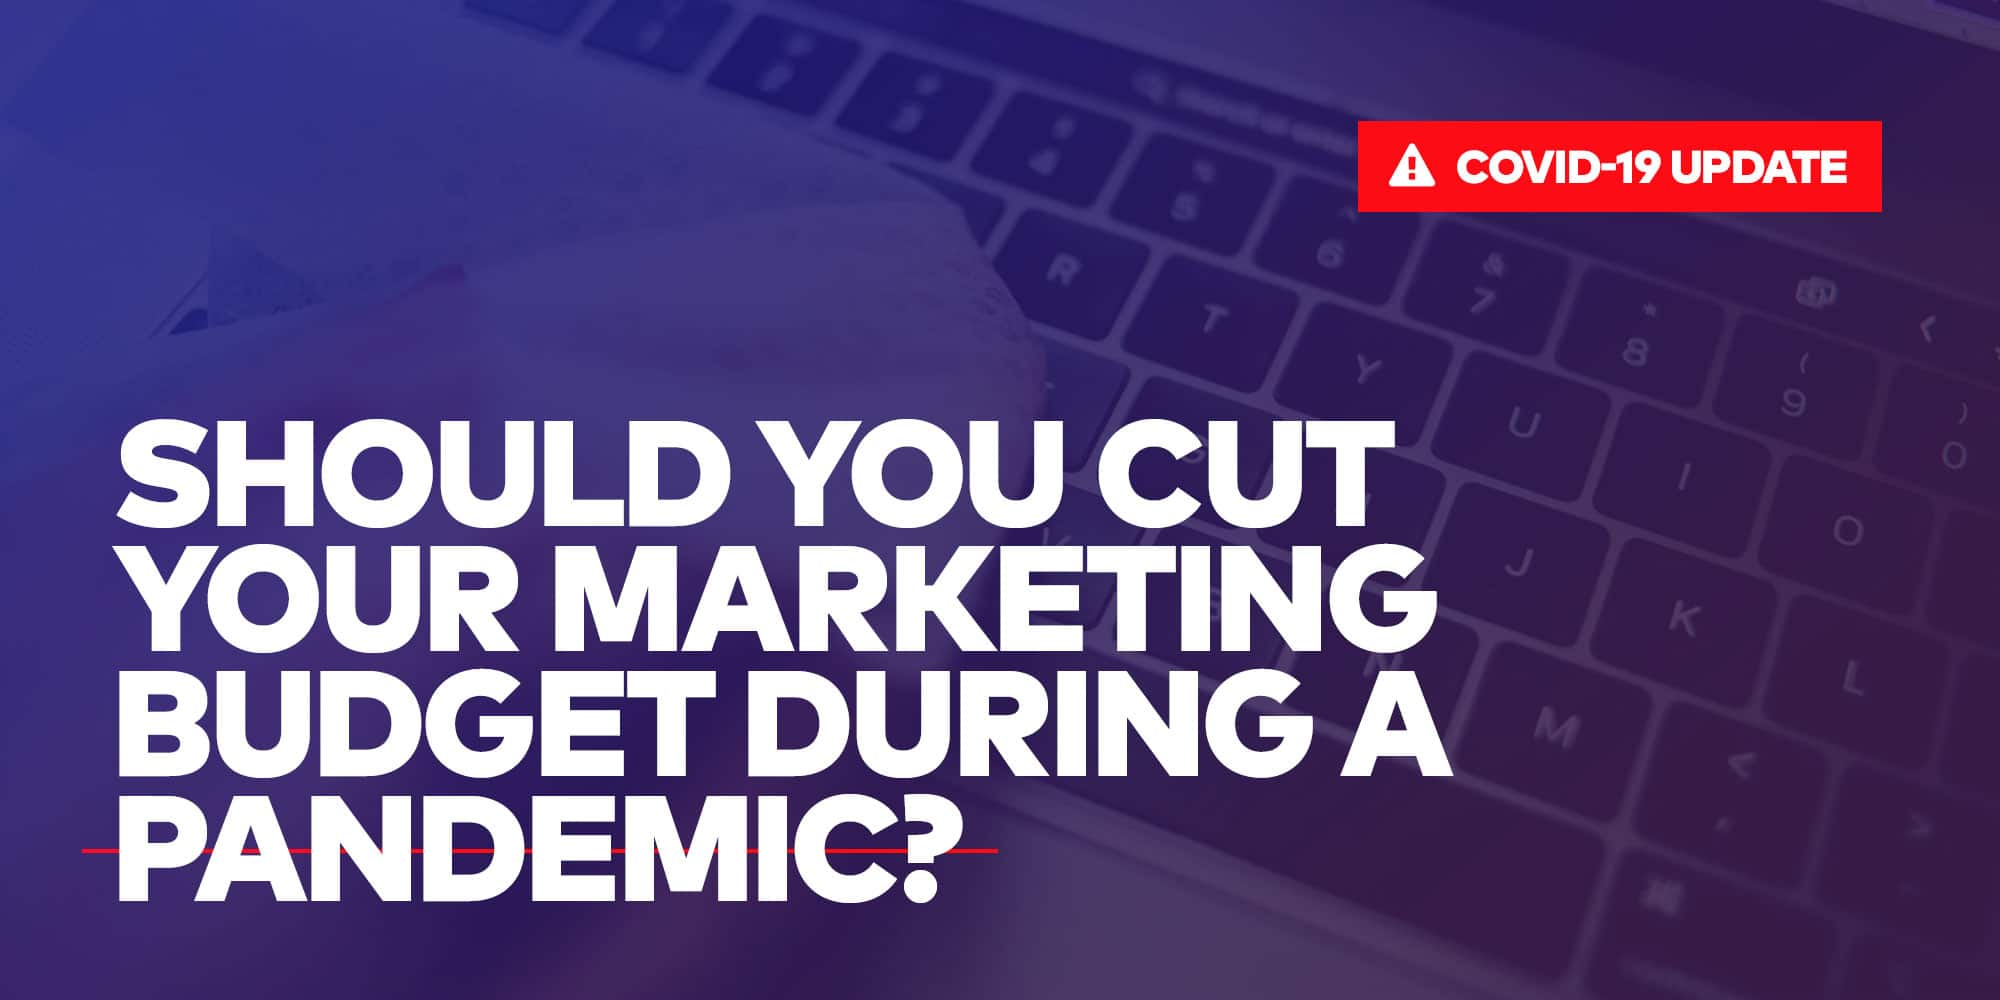 """Cover image of """"Should you cut your marketing budget during a pandemic?"""", part of COVID-19 resources by Single Origin Media, a bay area web design and social media agency"""